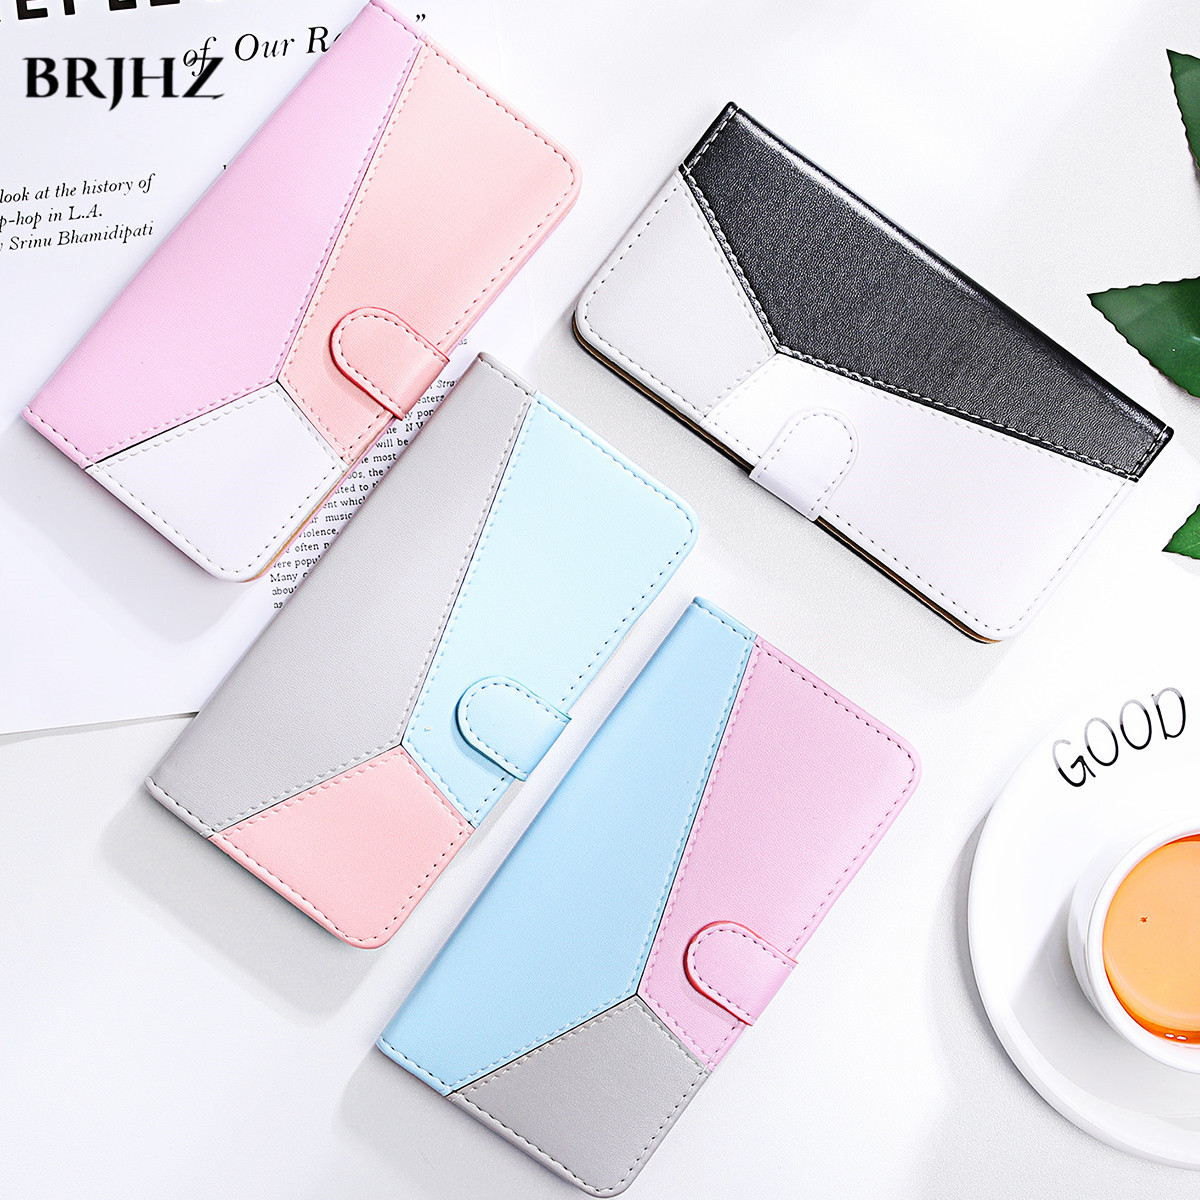 Huawei <font><b>Honor</b></font> <font><b>10i</b></font> <font><b>Case</b></font> Leather Flip <font><b>Case</b></font> Honor10i HRY-LX1T Coque Wallet Magnetic Cover for Huawei <font><b>Honor</b></font> <font><b>10i</b></font> 10 Lite Phone <font><b>Cases</b></font> image